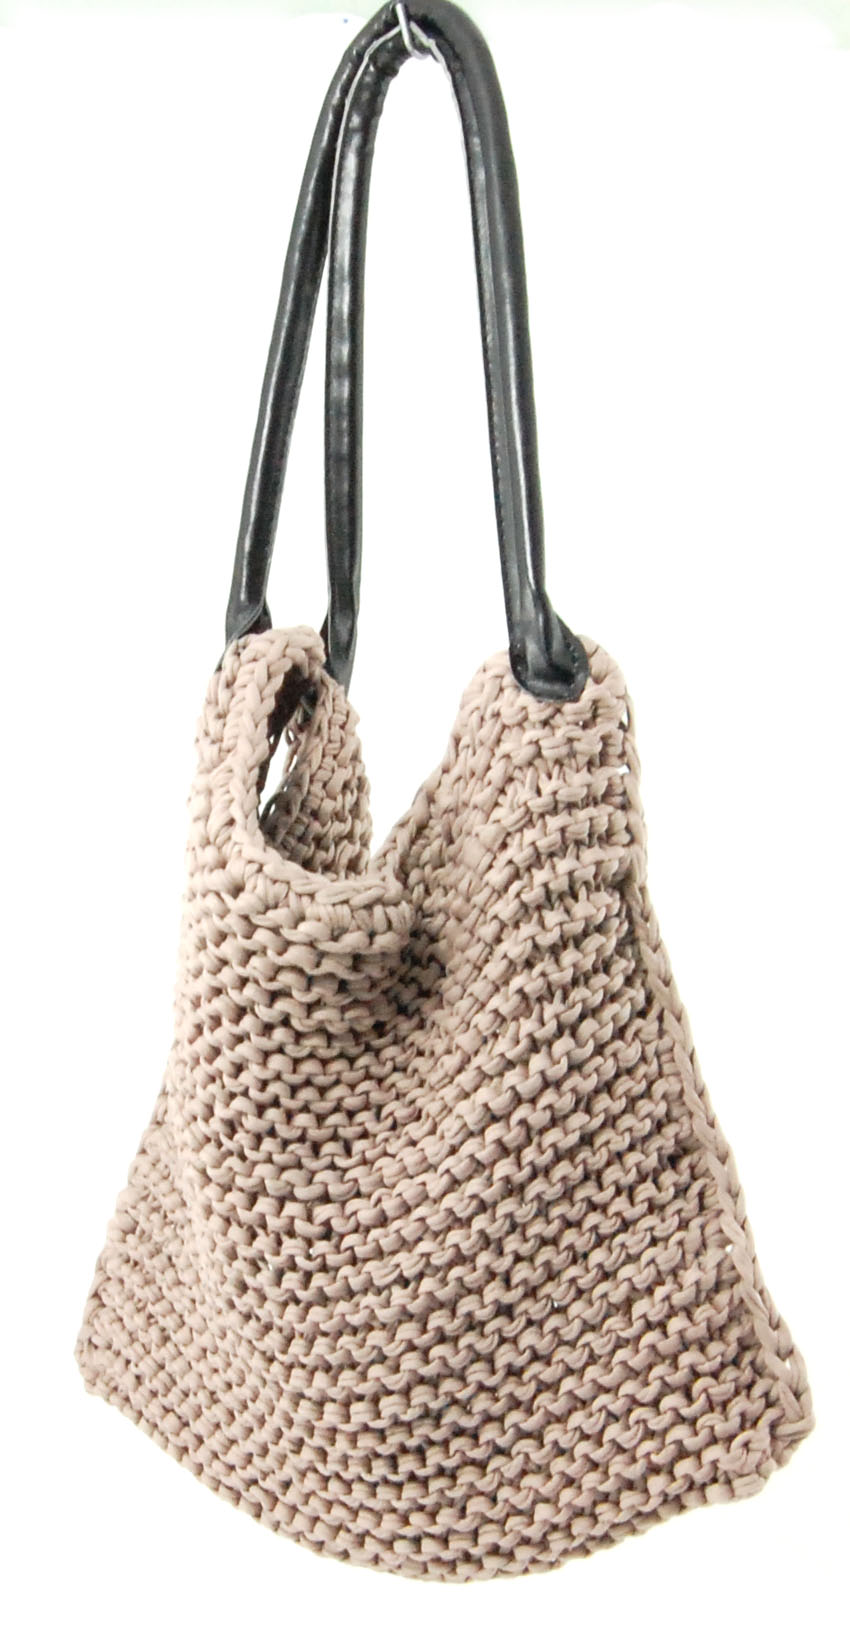 Knitting Bag : Knitted bag tutorial LVLY